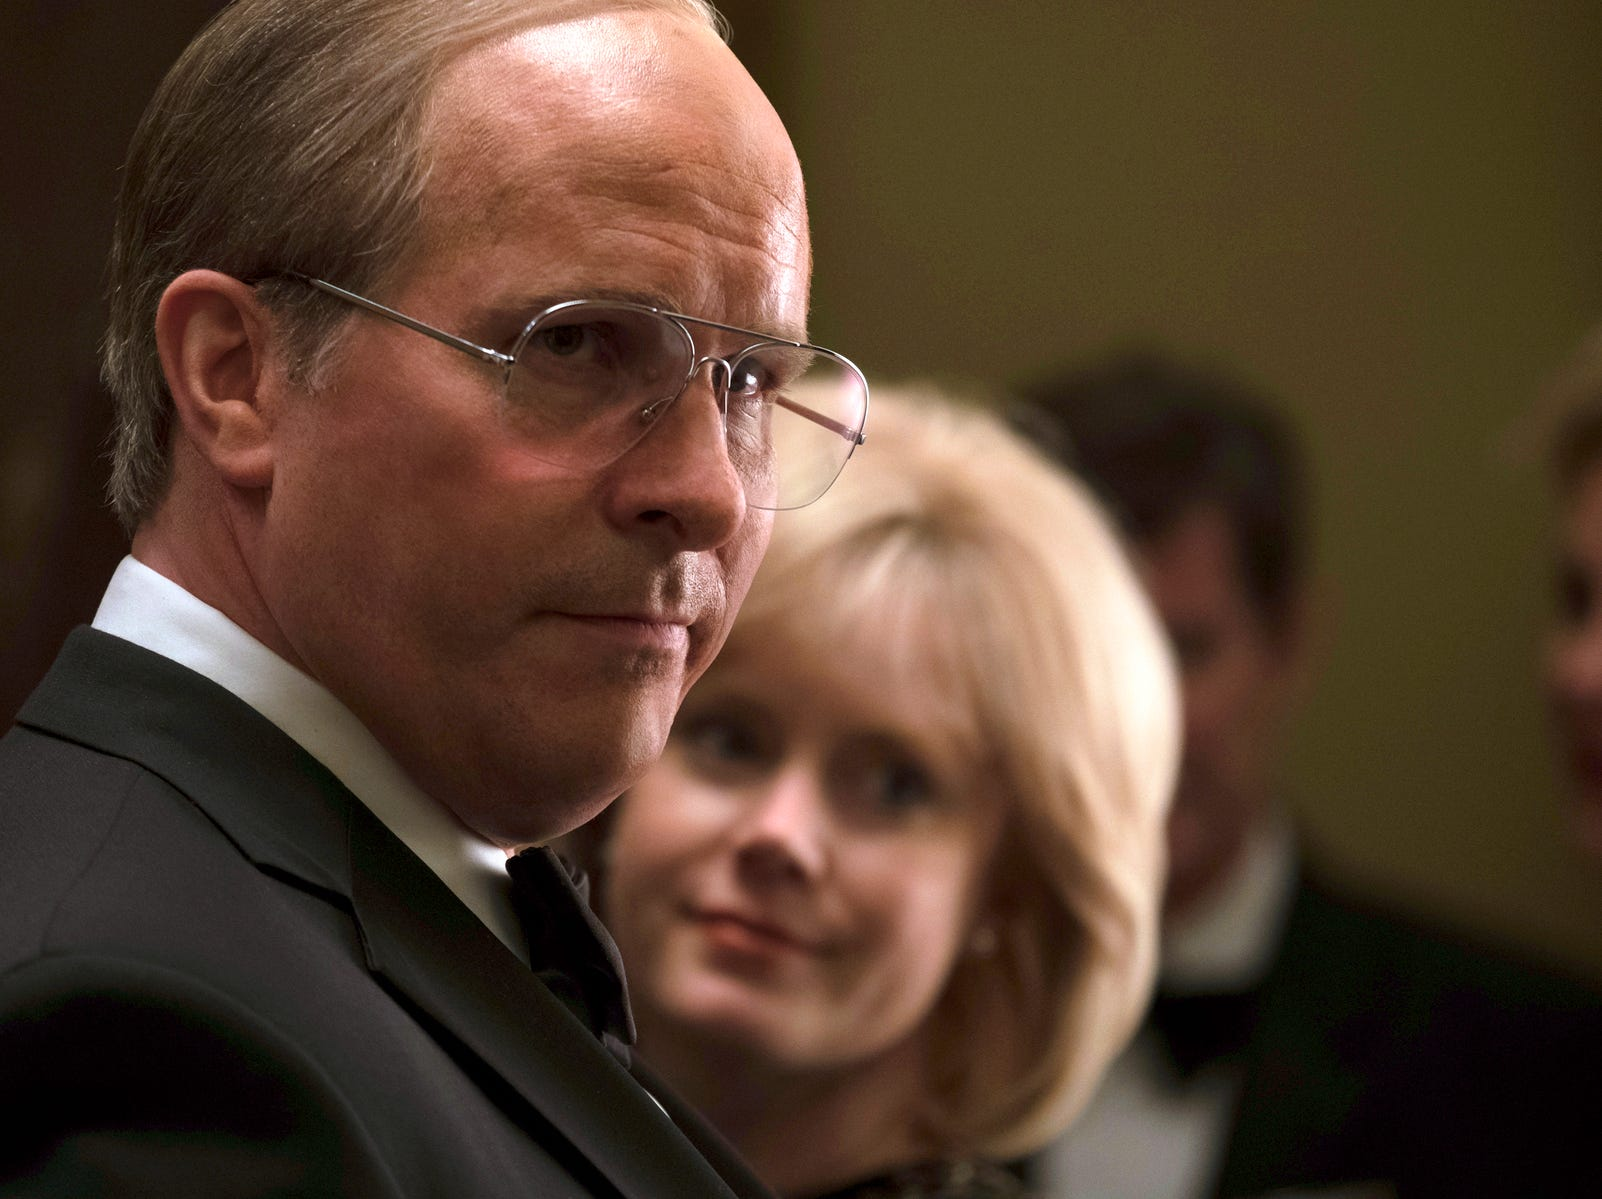 "This image released by Annapurna Pictures shows Christian Bale as Dick Cheney, left, and Amy Adams as Lynne Cheney in a scene from ""Vice.""  On Thursday, Dec. 6, 2018, Bale was nominated for a Golden Globe award for lead actor in a motion picture comedy or musical for his role in the film. The 76th Golden Globe Awards will be held on Sunday, Jan. 6. (Matt Kennedy/Annapurna Pictures via AP) ORG XMIT: NYET827"